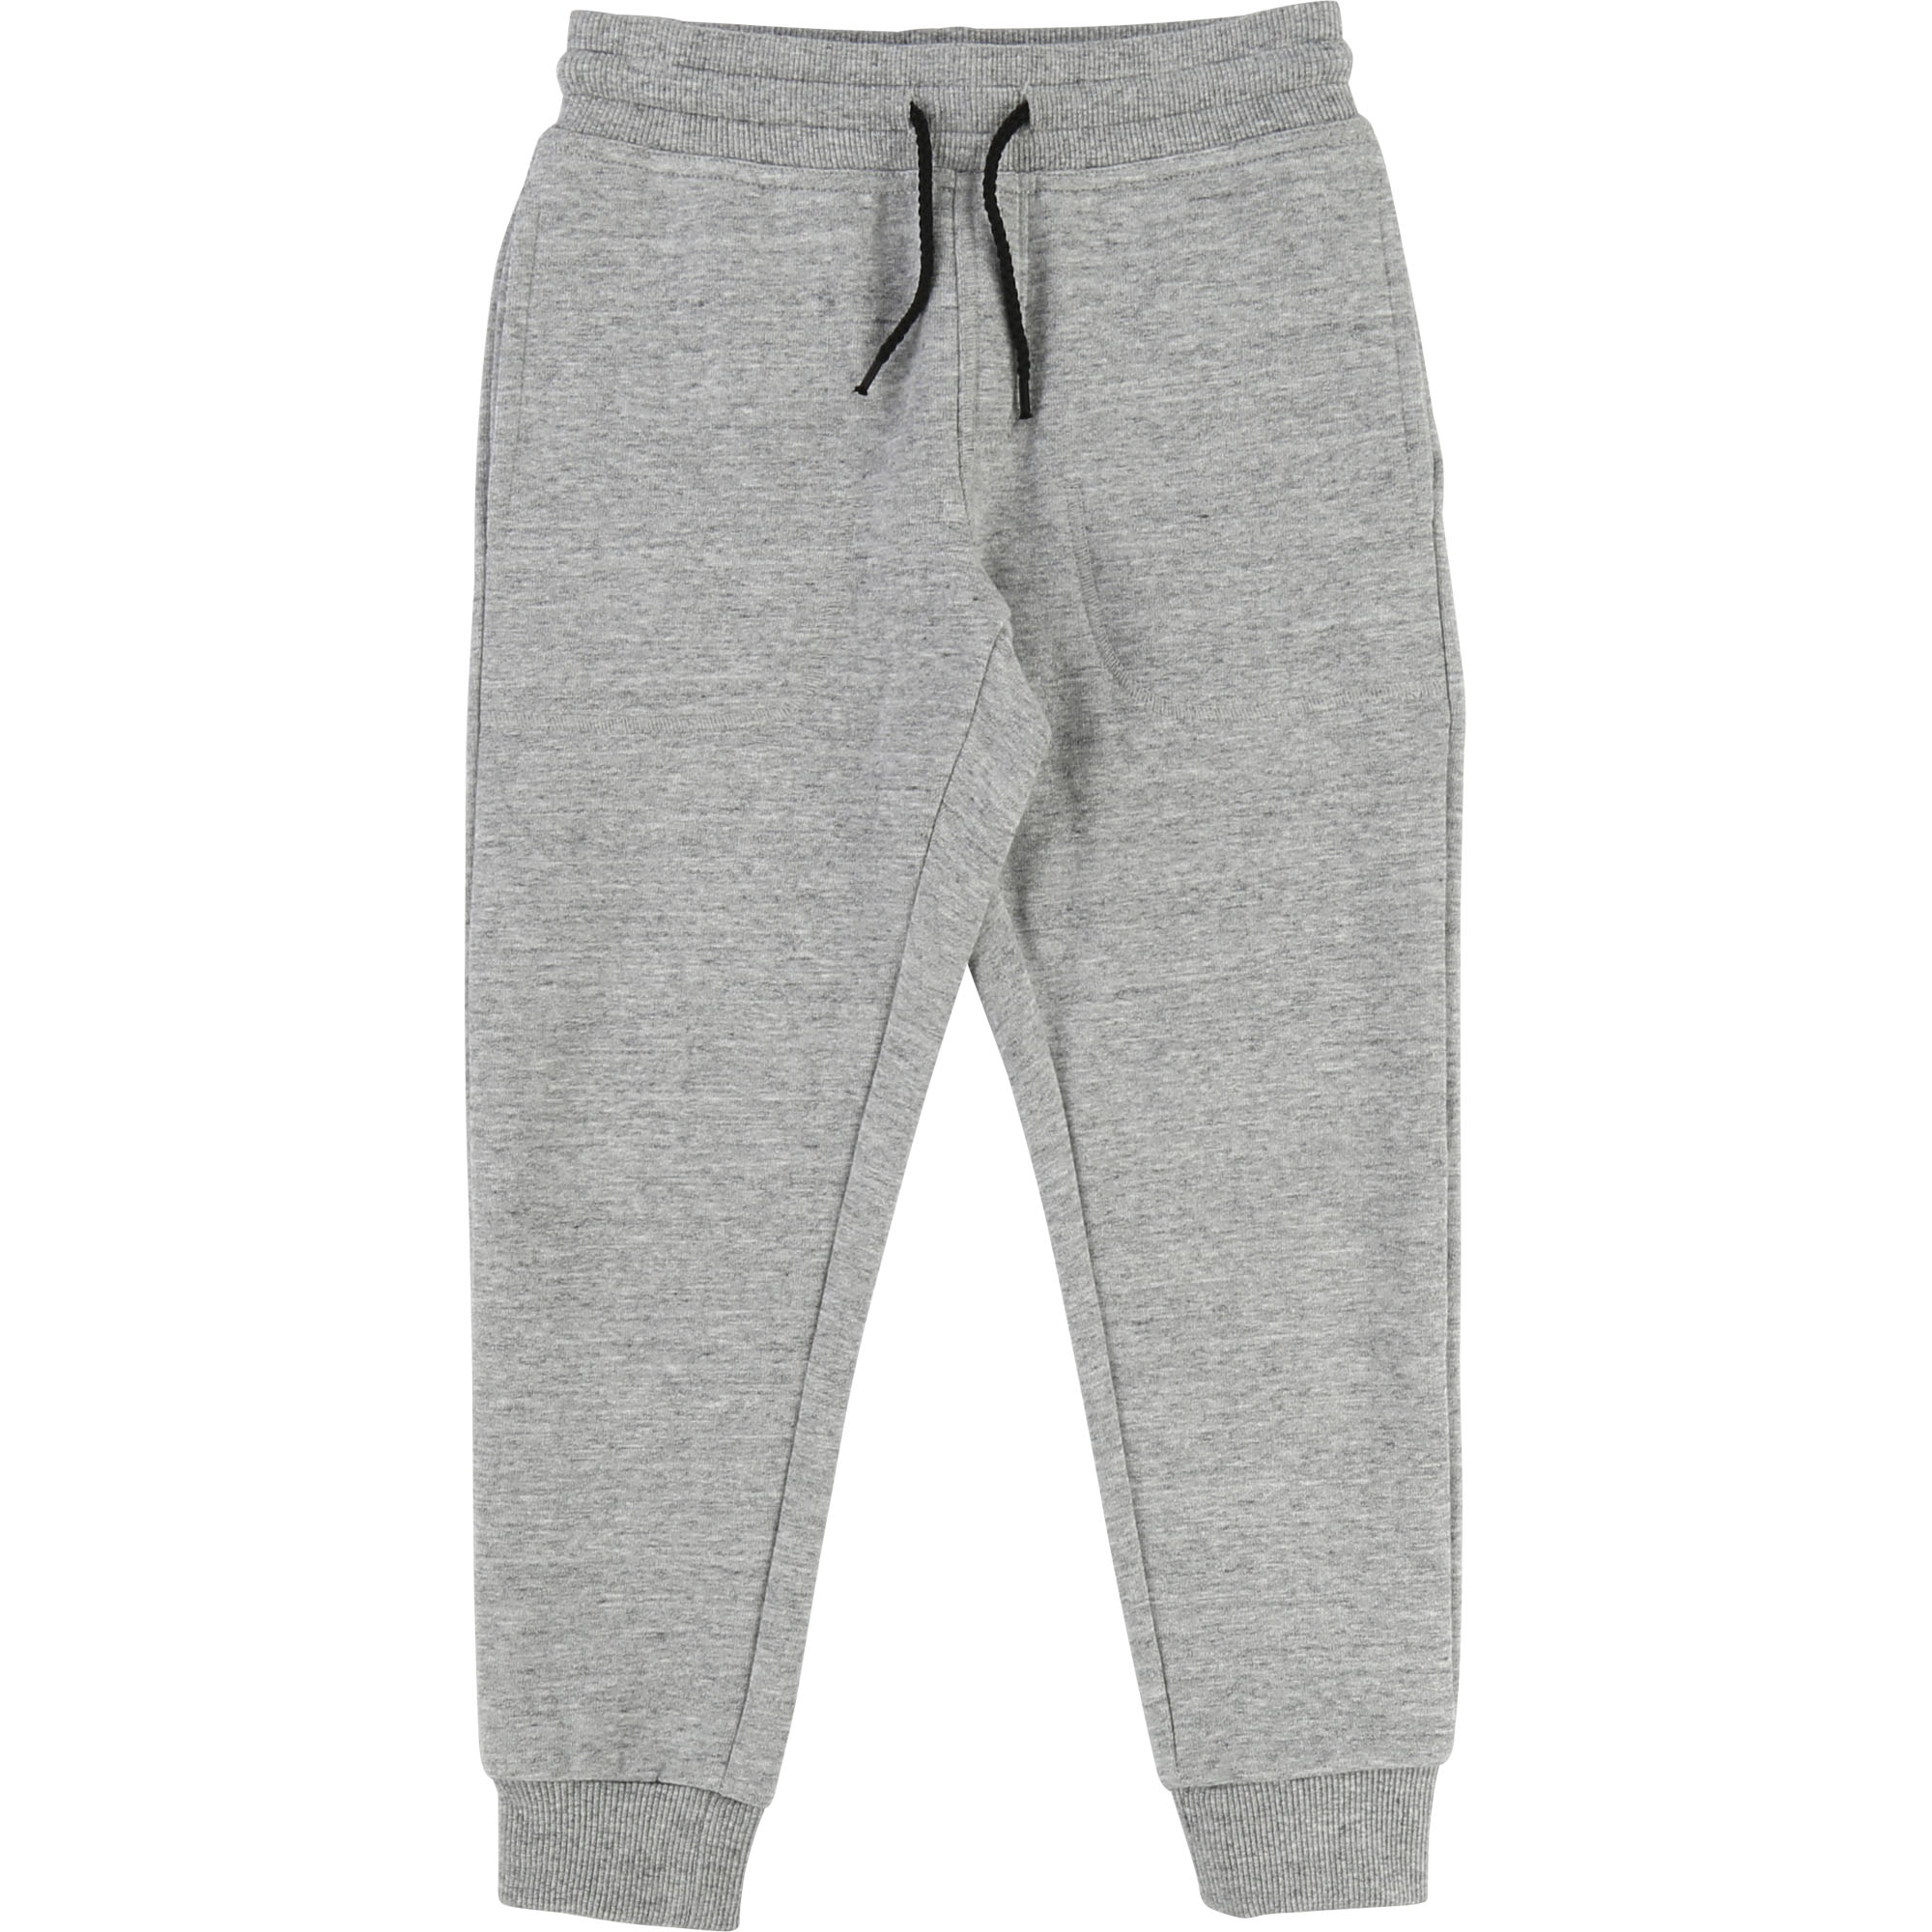 Pantalon jogging molleton THE MARC JACOBS pour GARCON